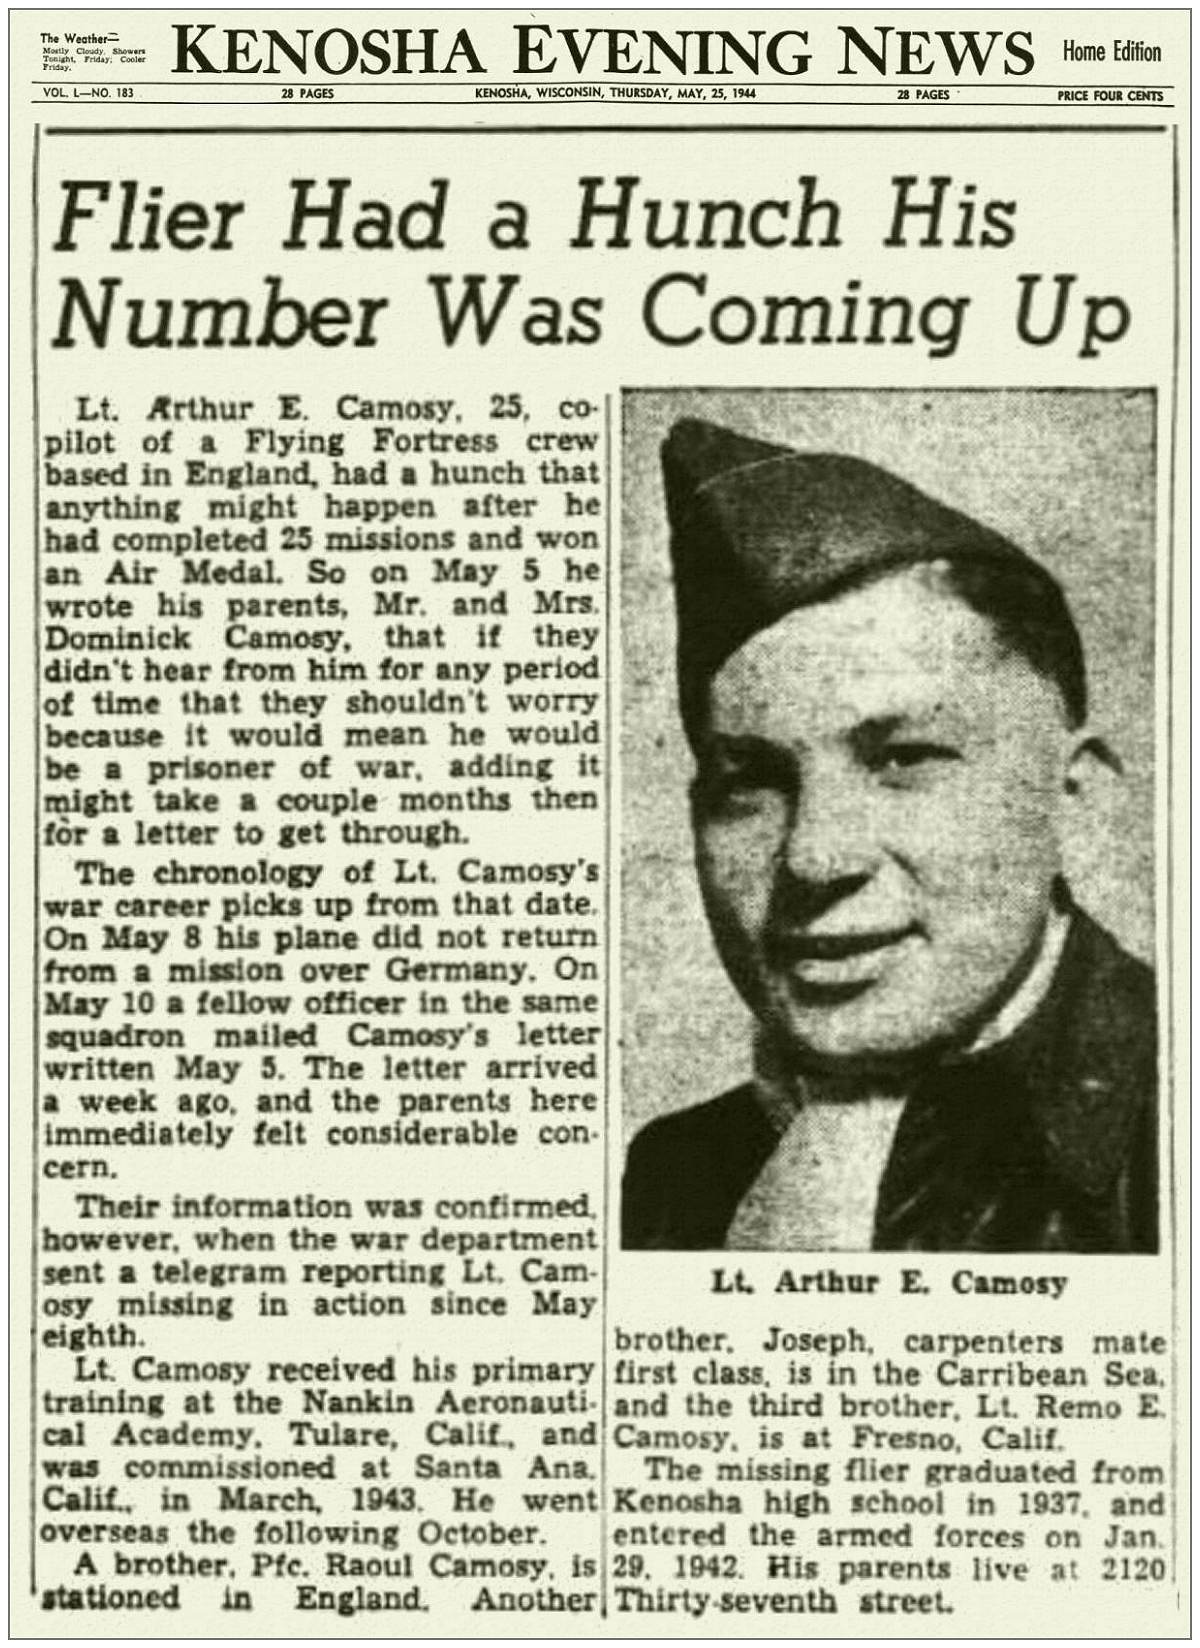 O-736986 - Lt. Arthur E. Camosy - Kenosha Evening News - 25 May 1944